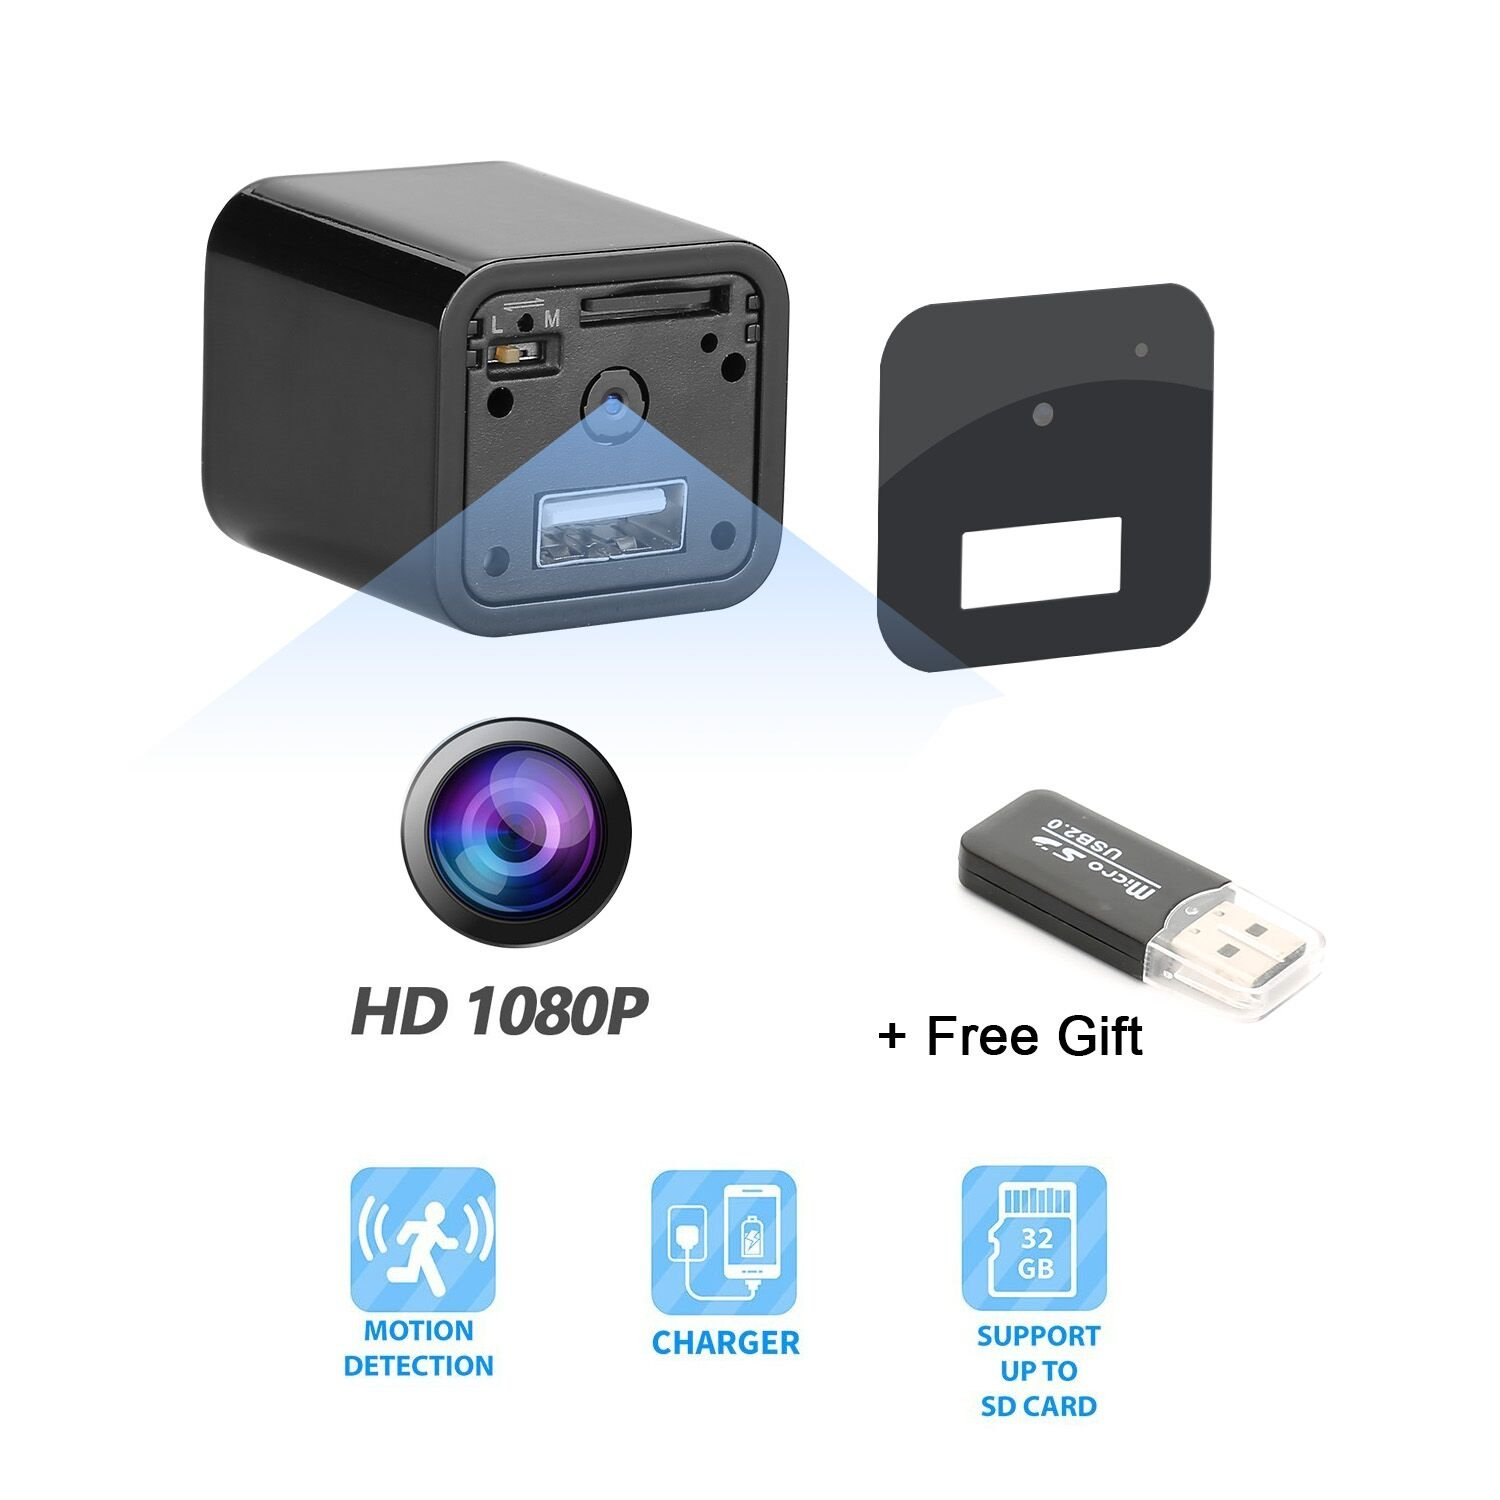 Hidden Camera - Spy Camera Adapter- 1080P HD USB Wall Charger Motion Detection Loop Recording Free Flash Transfer Stick Security Surveillance Your Home Office